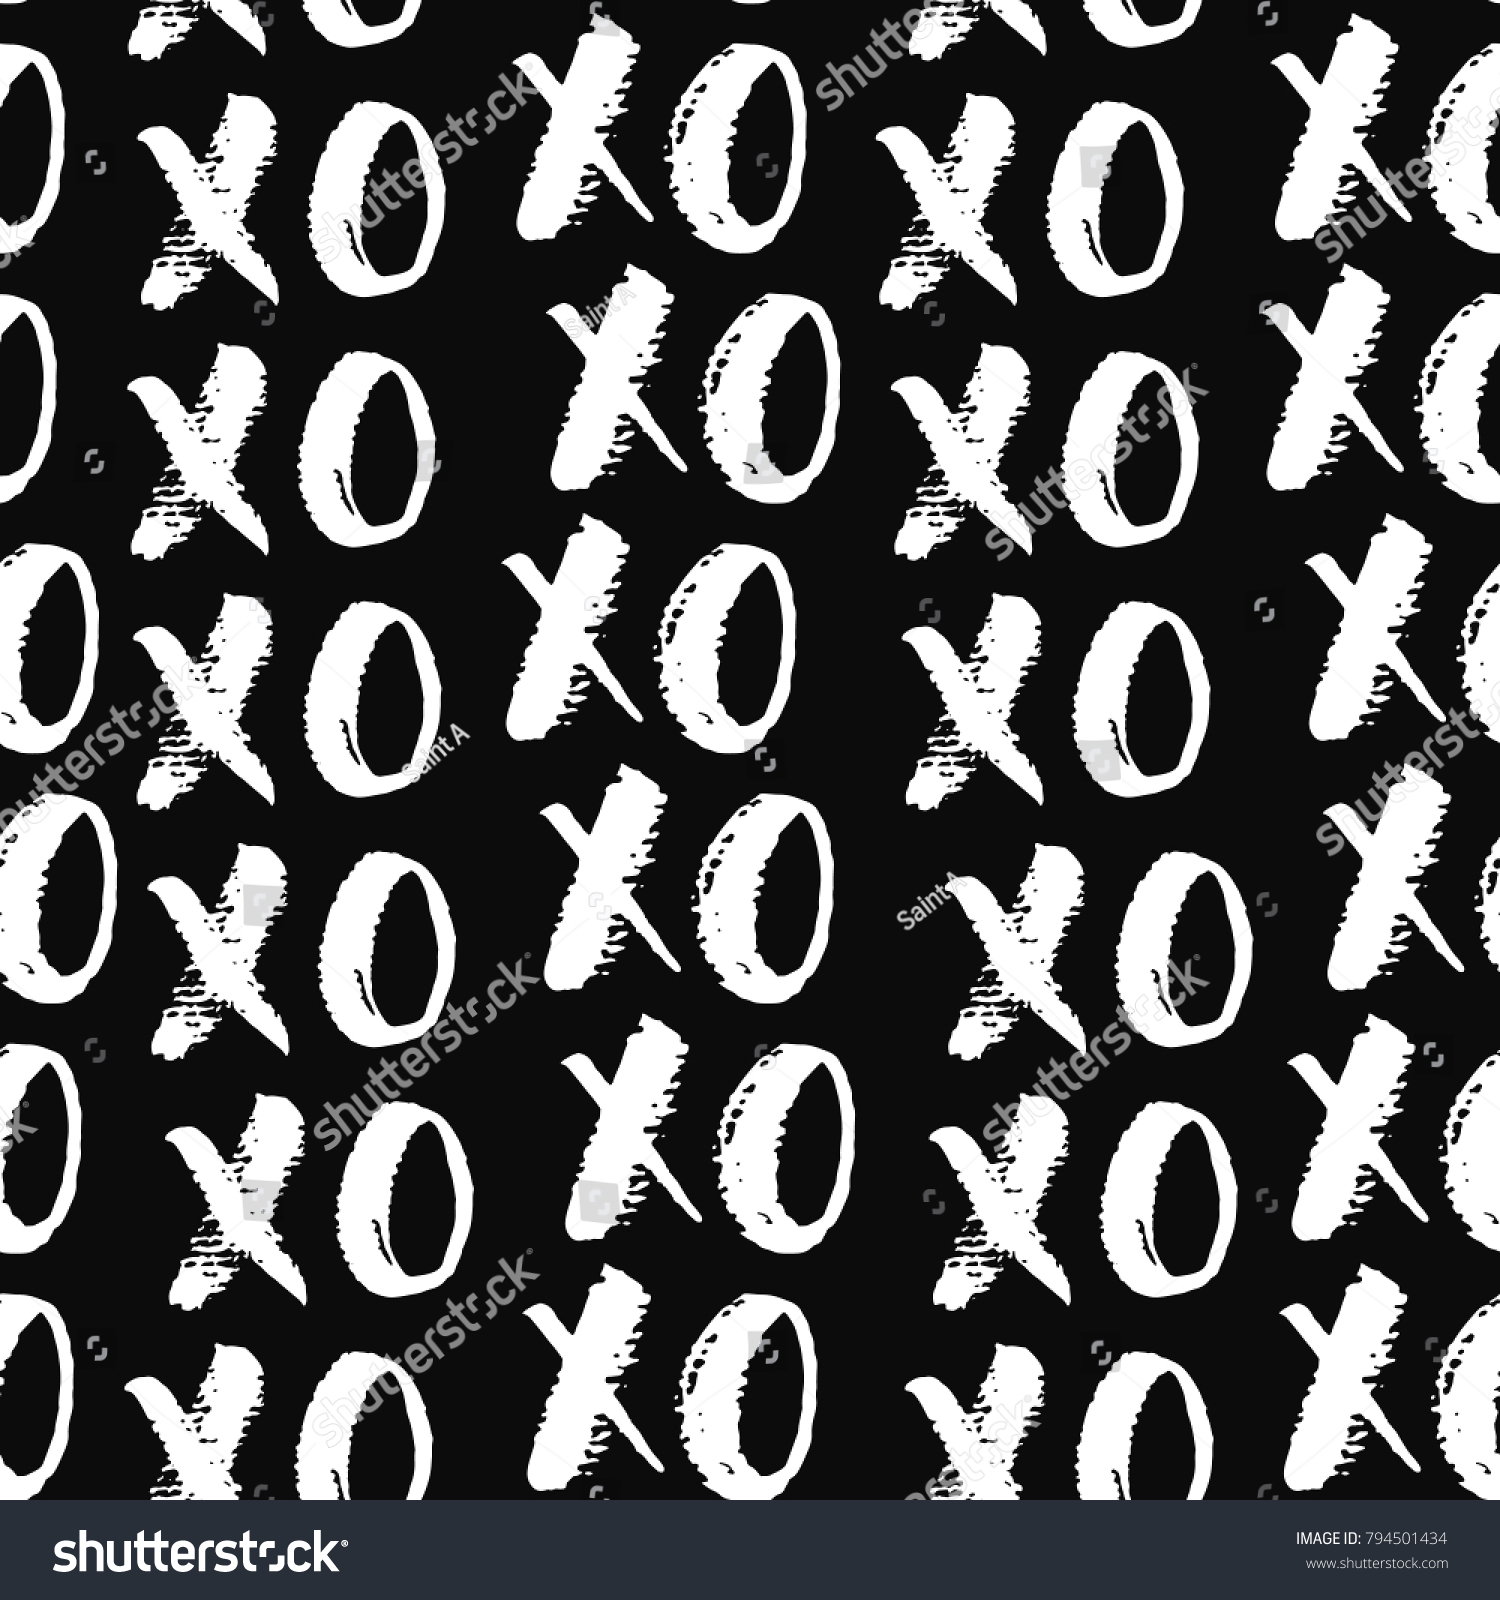 Xoxo Brush Lettering Signs Seamless Pattern Stock Vector Royalty